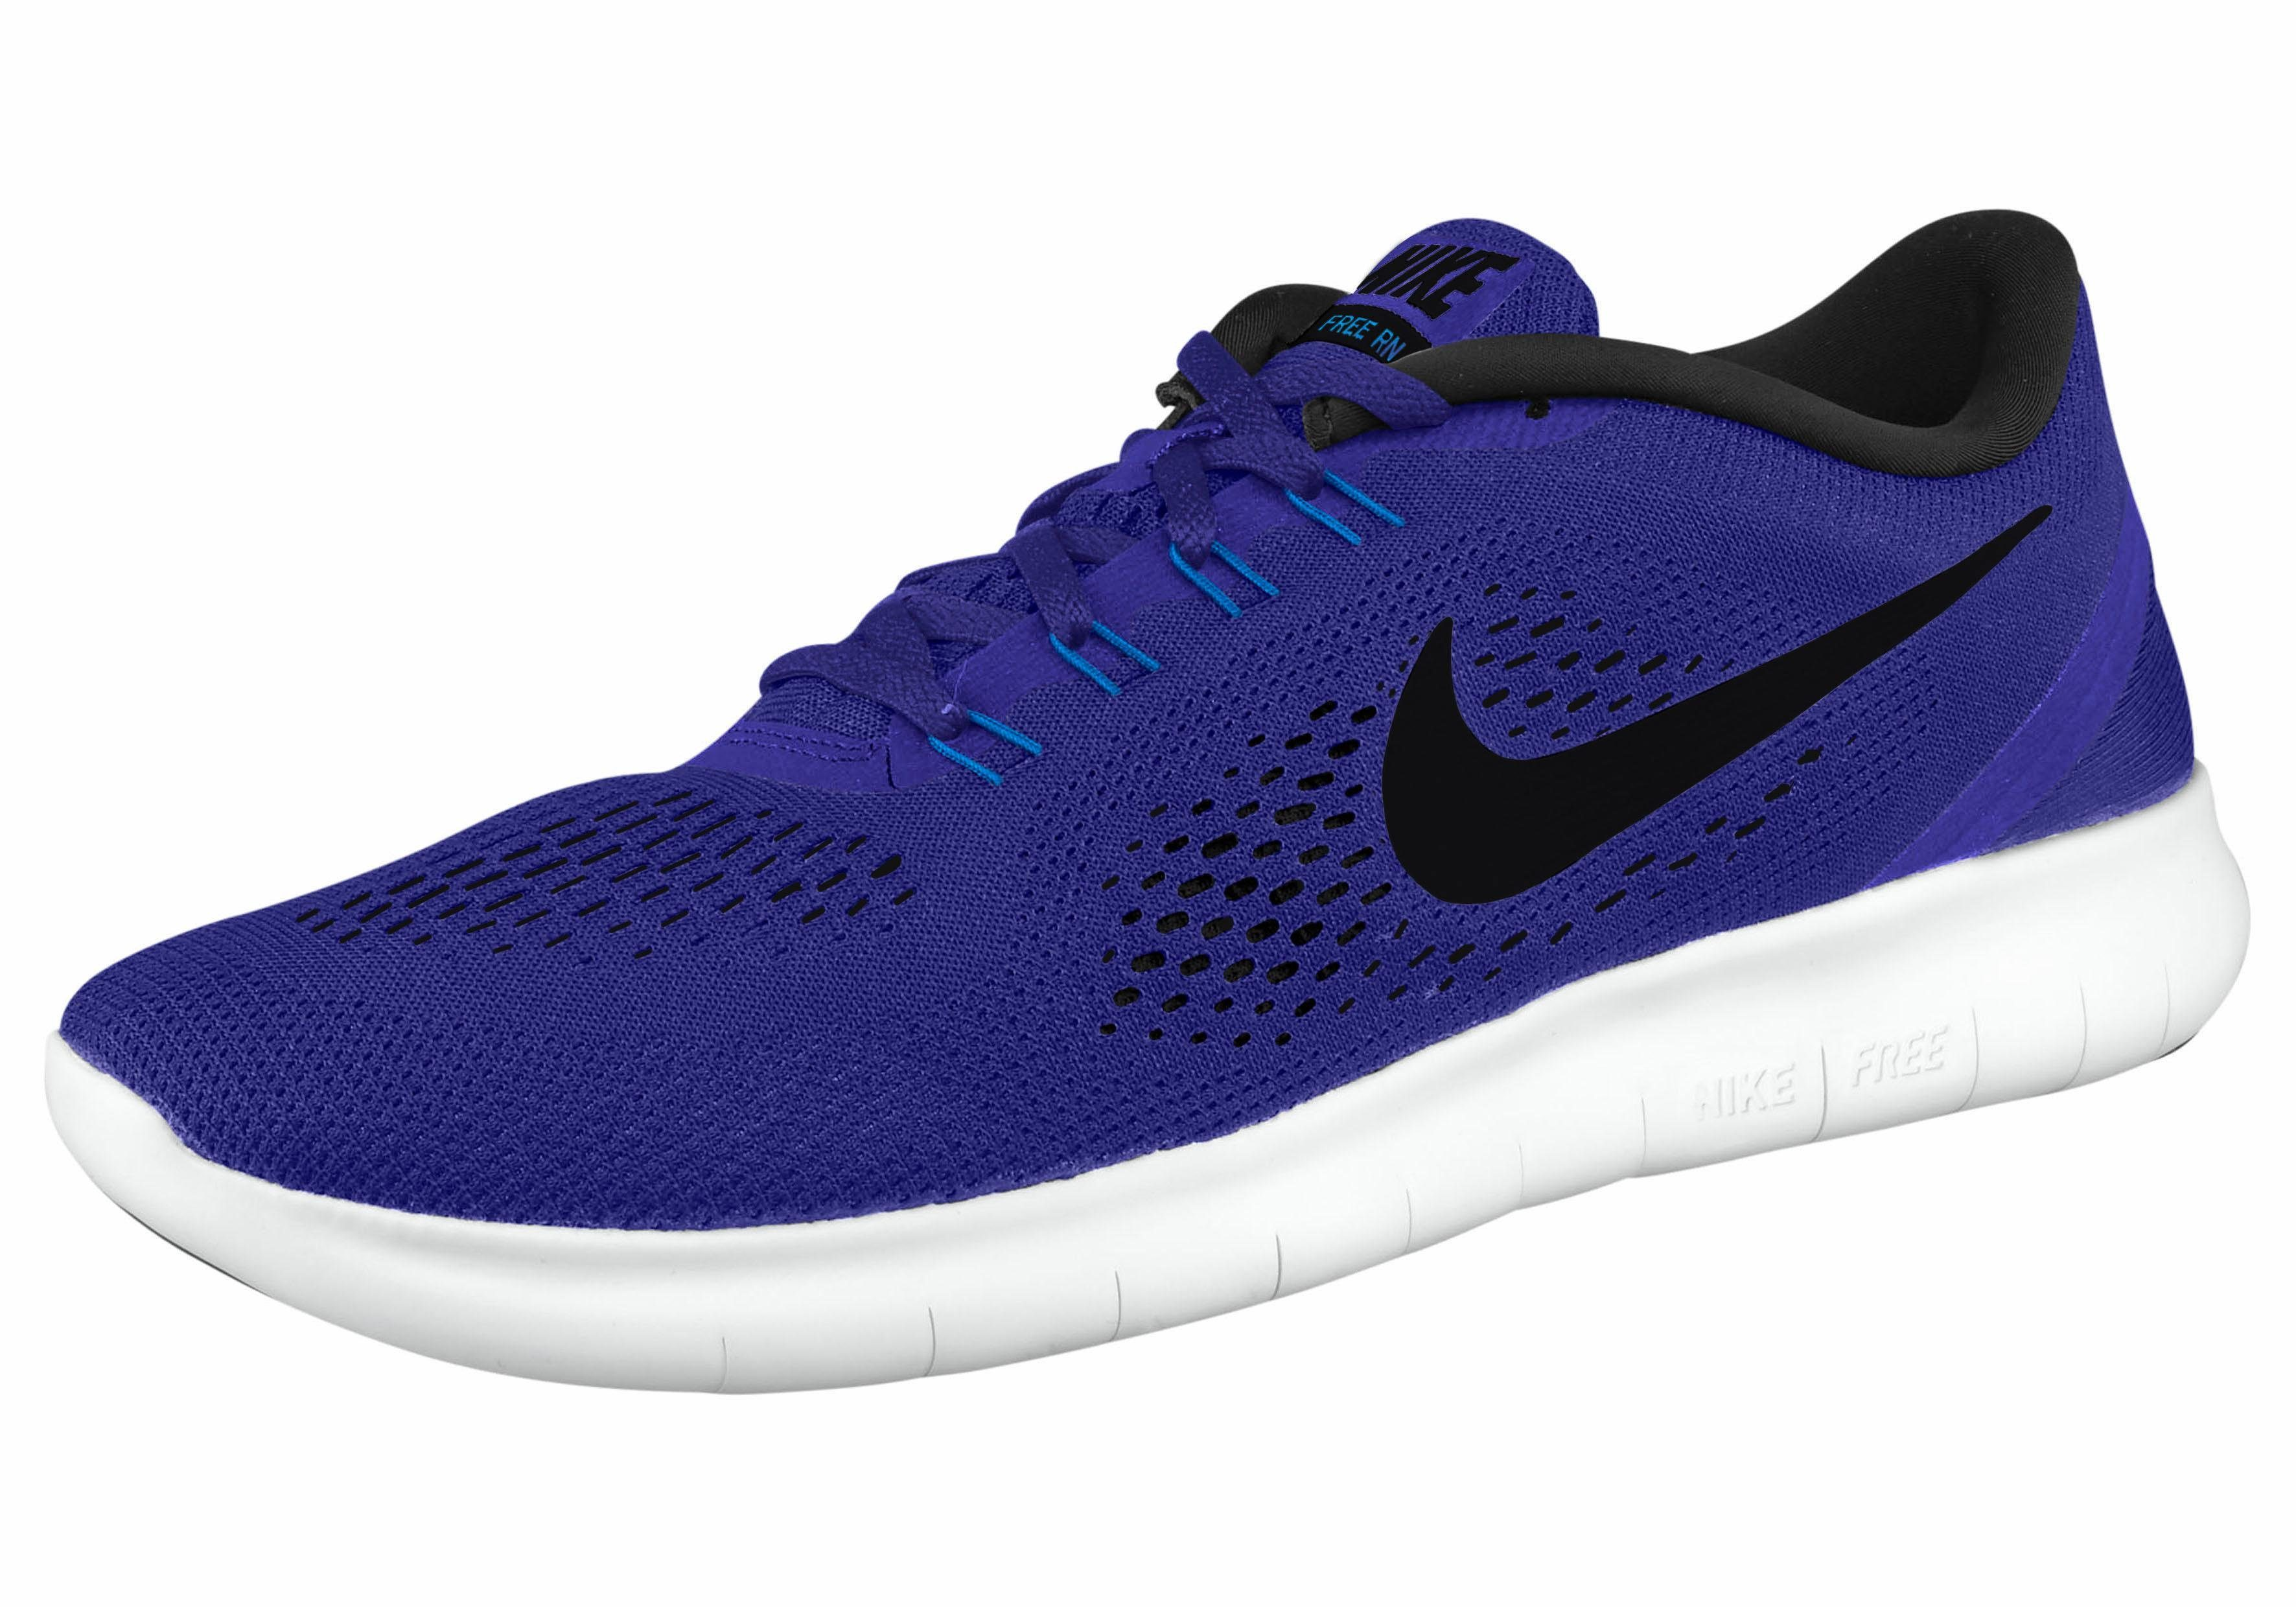 Nike Femme Free Free Ratenzahlung Femme Ratenzahlung Femme Free Nike Nike Ratenzahlung qzpMVGSU